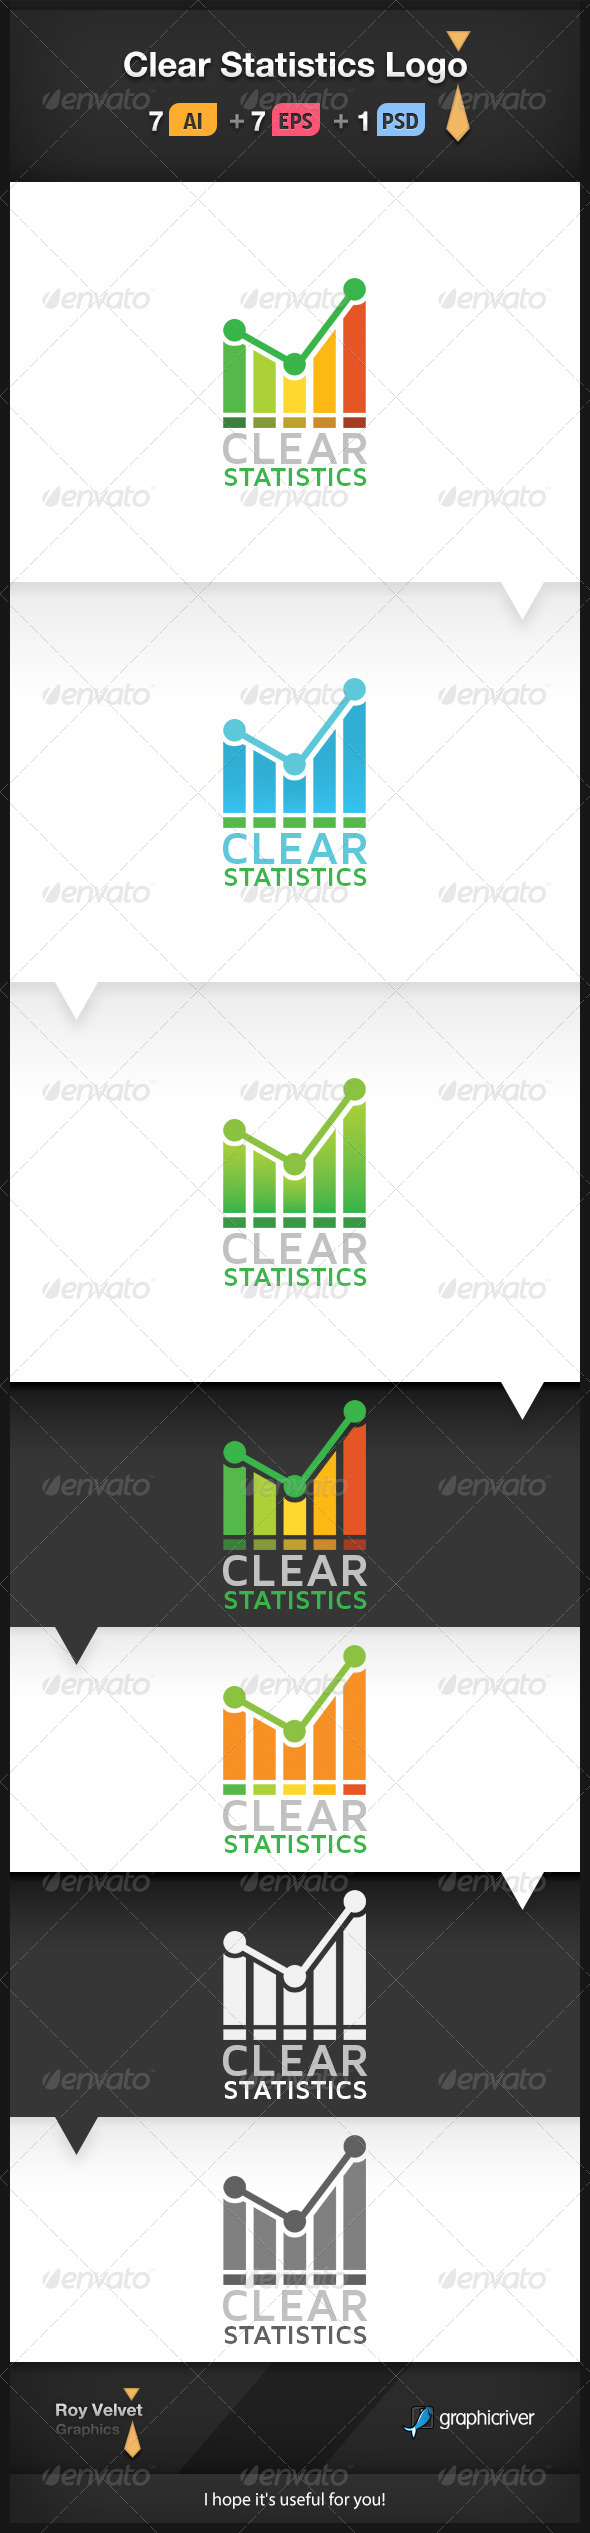 GraphicRiver Clear Statistics Logo 6198606